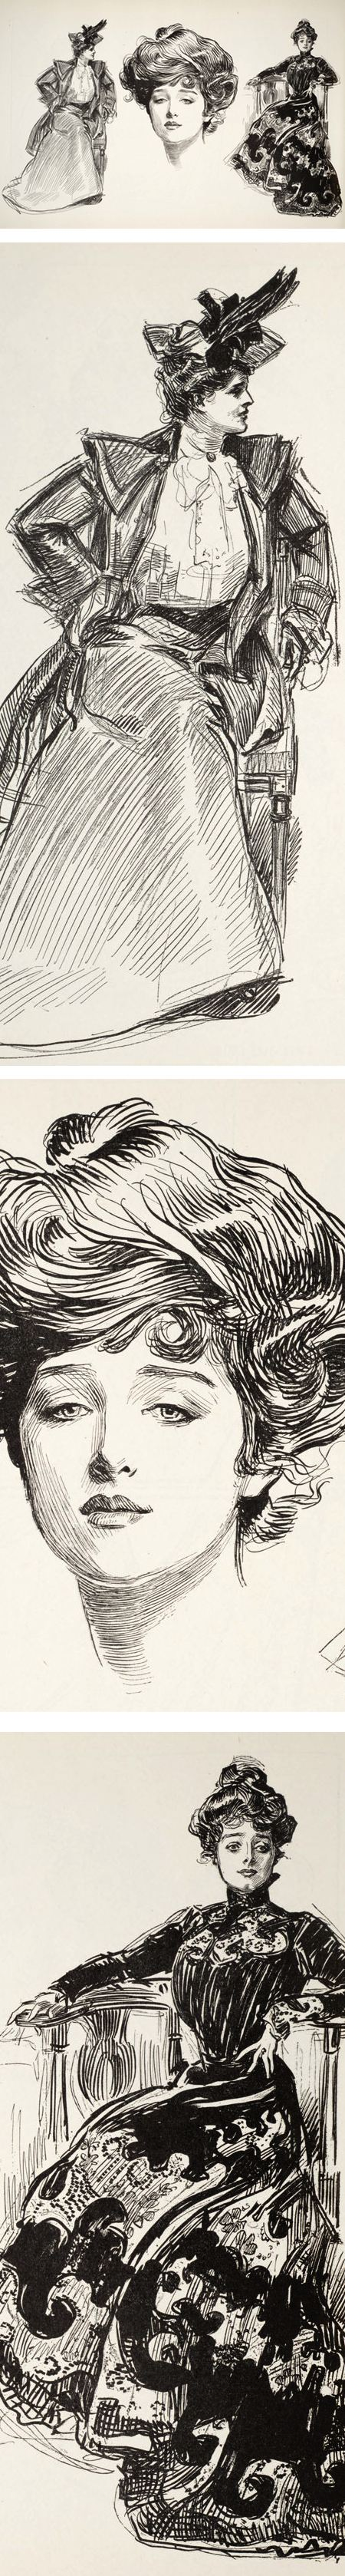 Charles Dana Gibson, classic pen and ink illustration